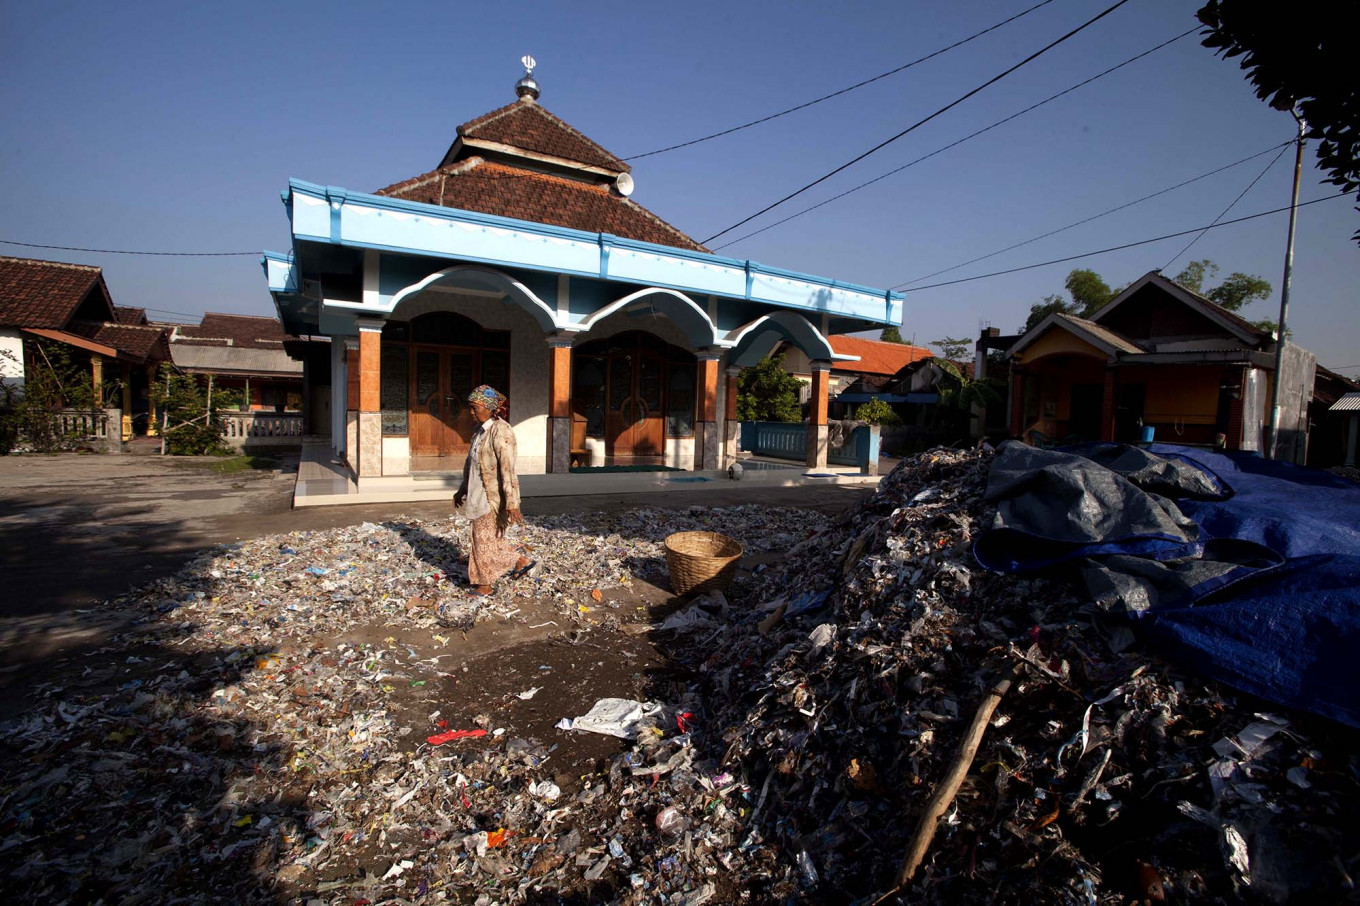 An elderly woman is sundrying waste in front of her house and the nearby mosque. JP/Sigit Pamungkas